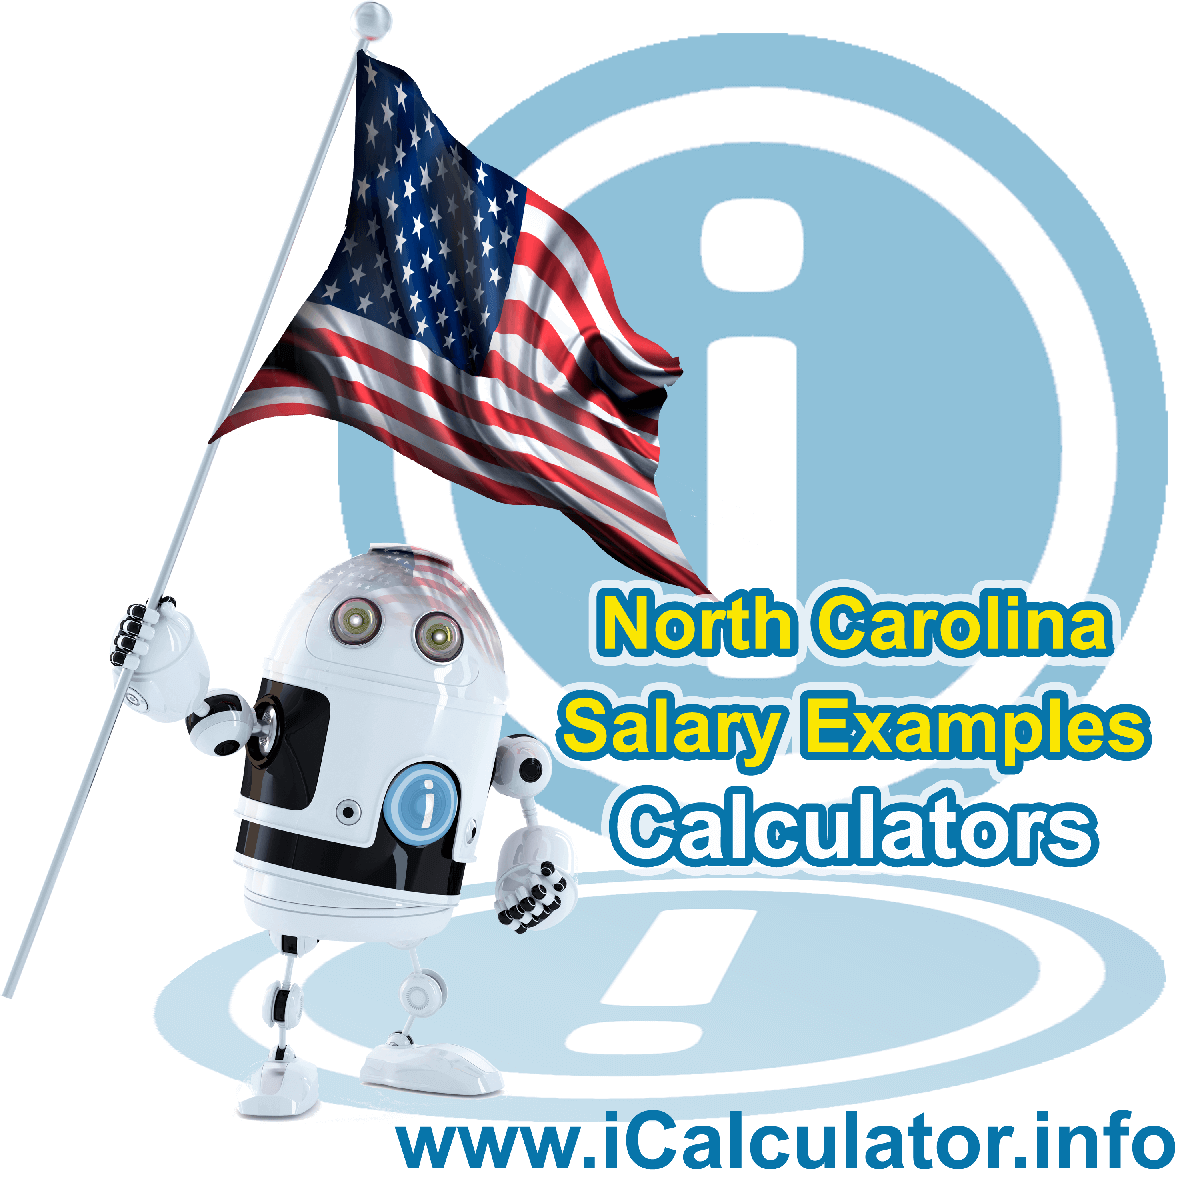 North Carolina Salary Example for $15,000.00 in 2020 | iCalculator | $15,000.00 salary example for employee and employer paying North Carolina State tincome taxes. Detailed salary after tax calculation including North Carolina State Tax, Federal State Tax, Medicare Deductions, Social Security, Capital Gains and other income tax and salary deductions complete with supporting North Carolina state tax tables